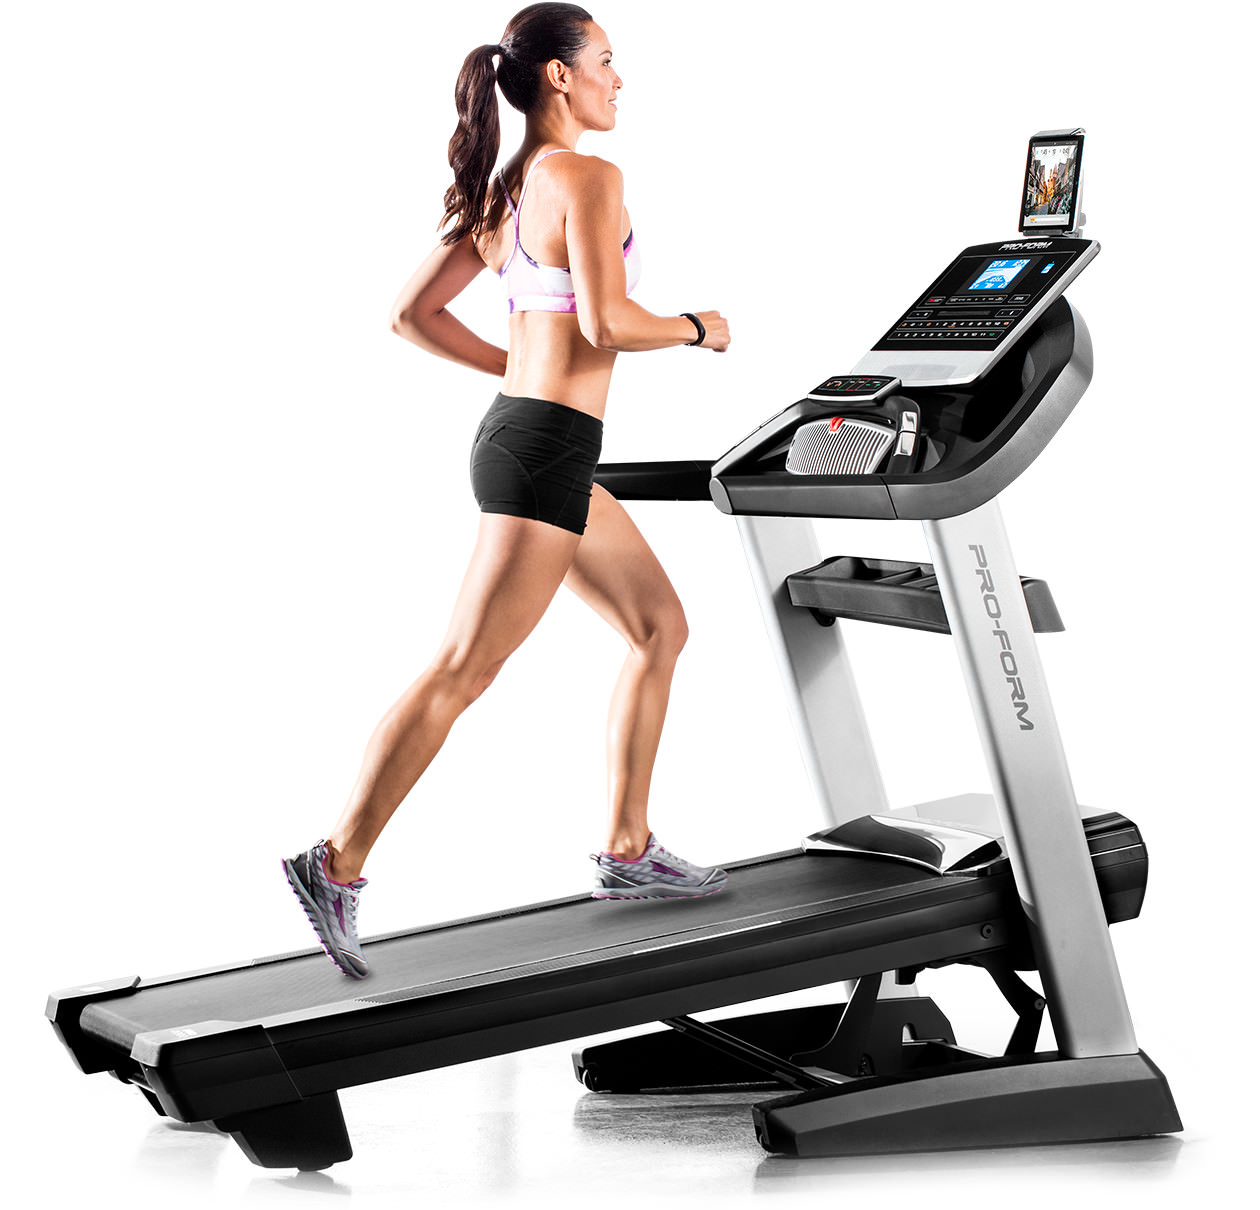 The New ProForm Pro 2000 Treadmill | ProForm